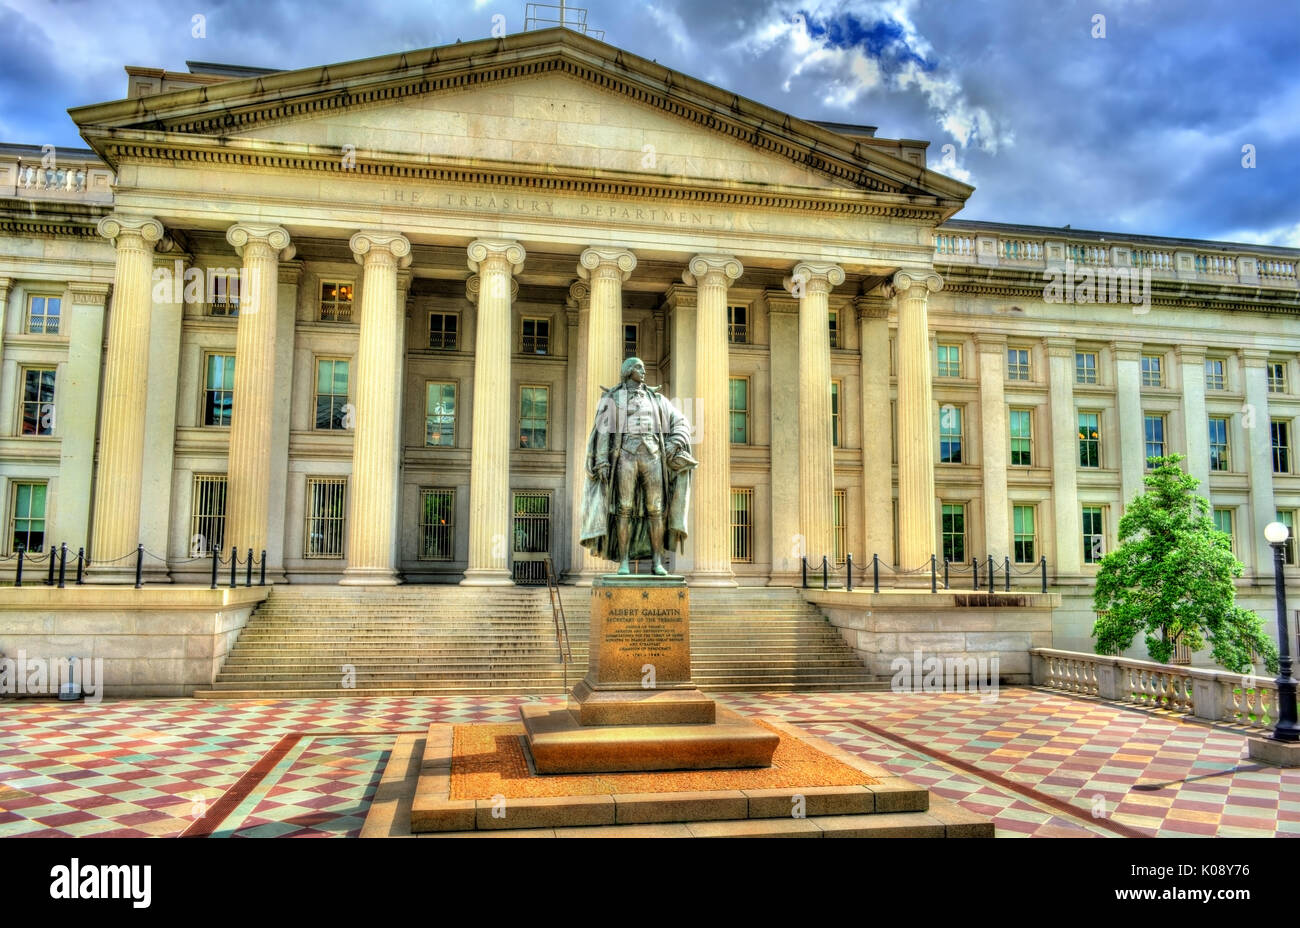 Statue of Albert Gallatin in front of US Treasury Department building in Washington, DC - Stock Image